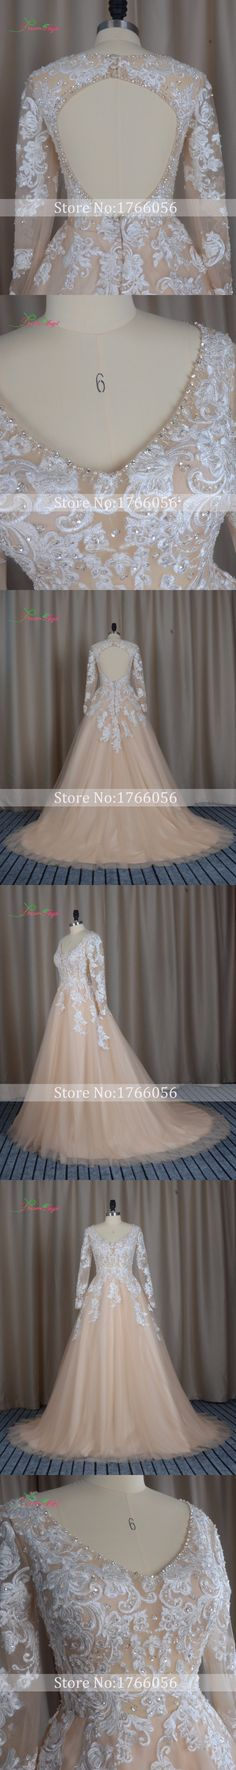 Dream Angel Sexy Backless Long Sleeve A Line Wedding Dresses 2017 V Neck Appliques Beaded Full China Robe De Mariee Plus Size